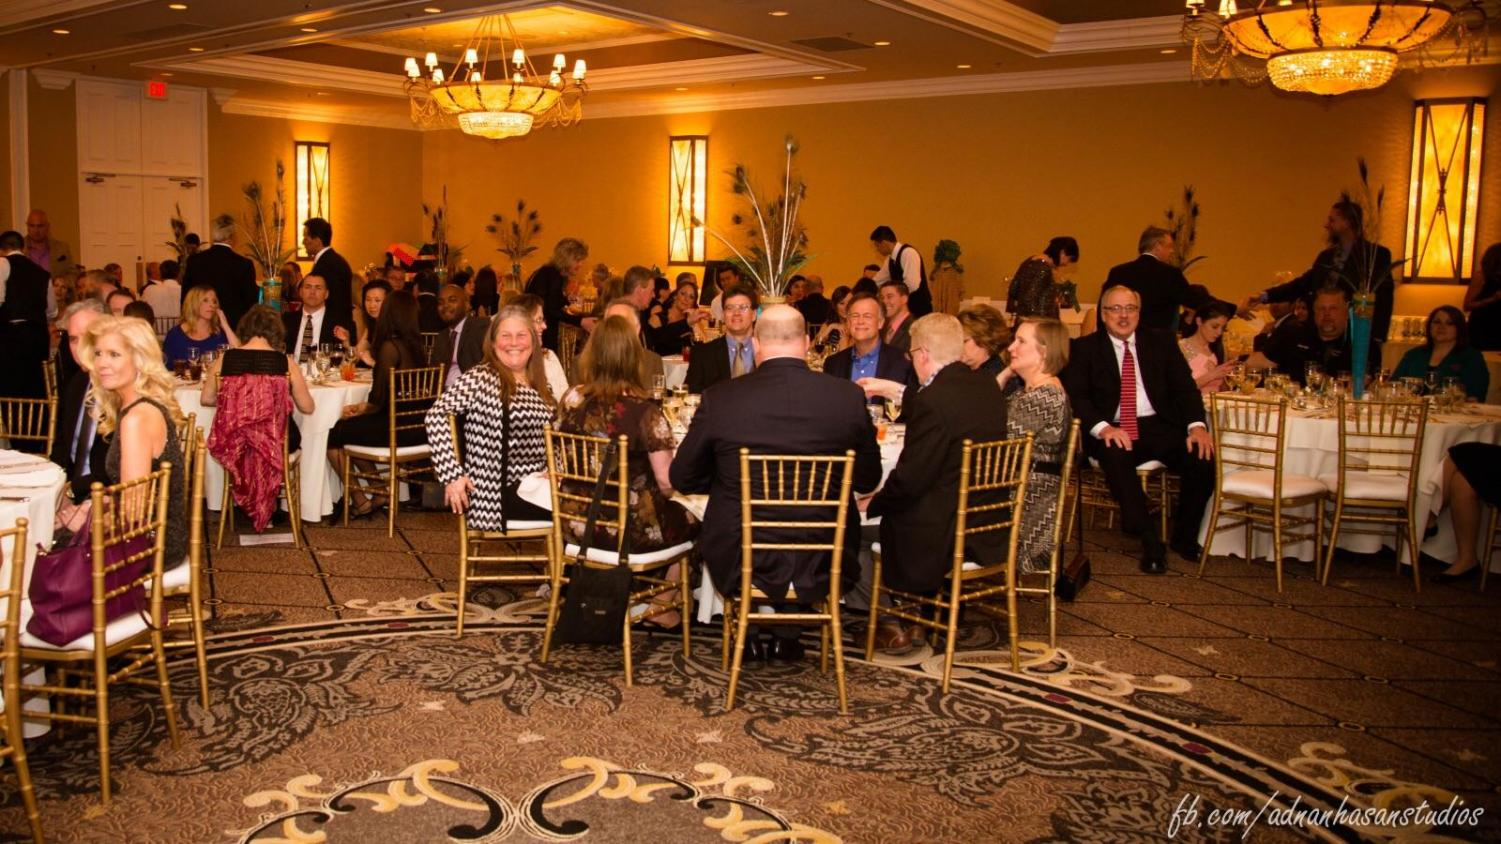 Adults converse during dinner at last year's District 95 Education Foundation Gala. This year's event is Oscar-themed and will take place in early March.